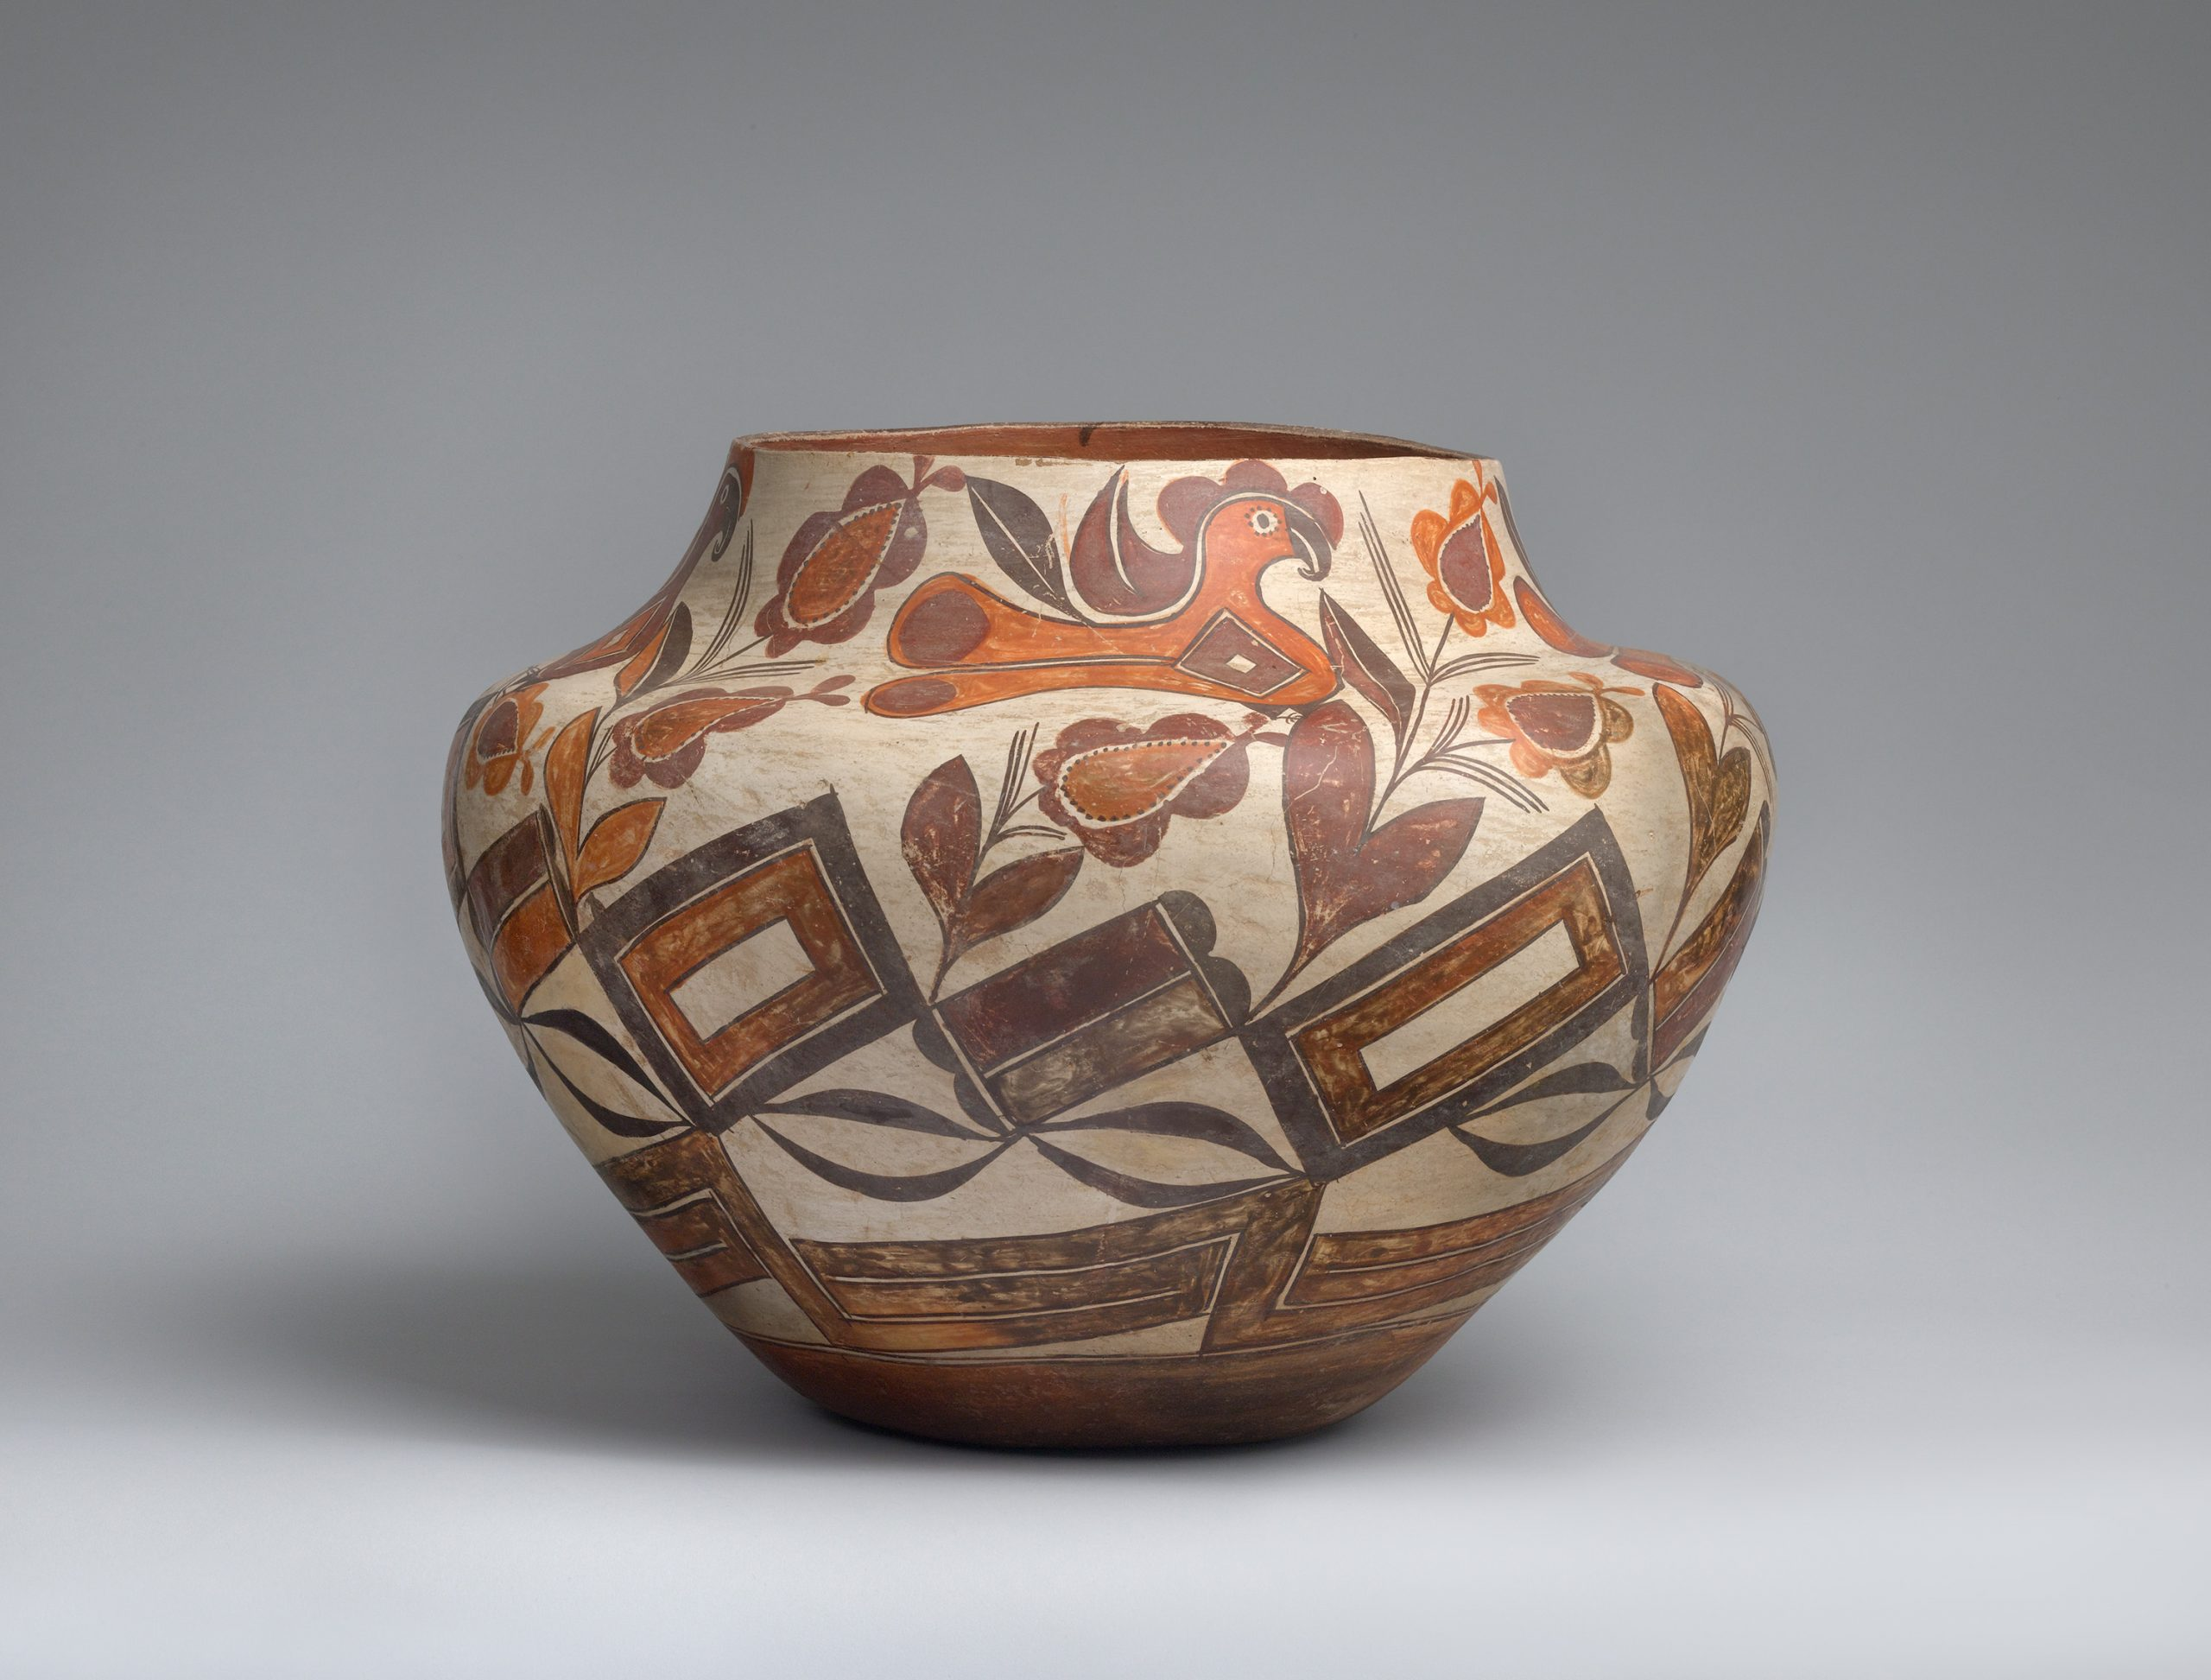 An Acoma jar decorated with birds, flora, and geometric shapes.